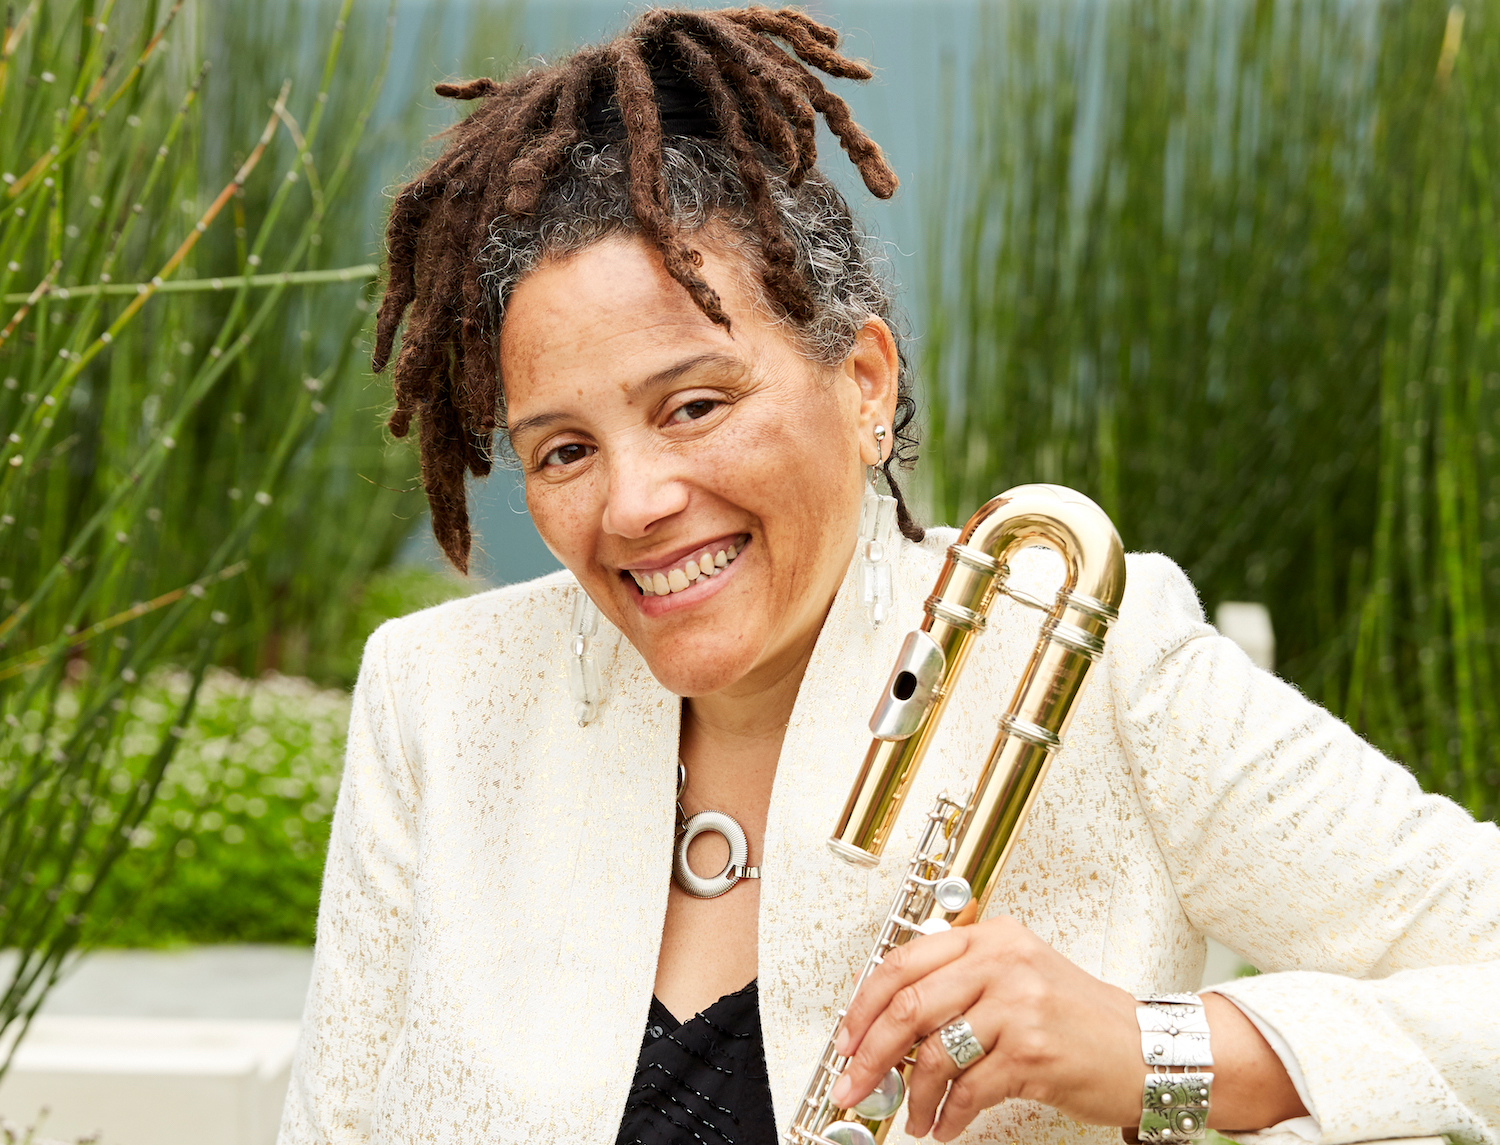 Renowned flutist Nicole M. Mitchell will fill the role of the vacant jazz studies program director beginning in July.